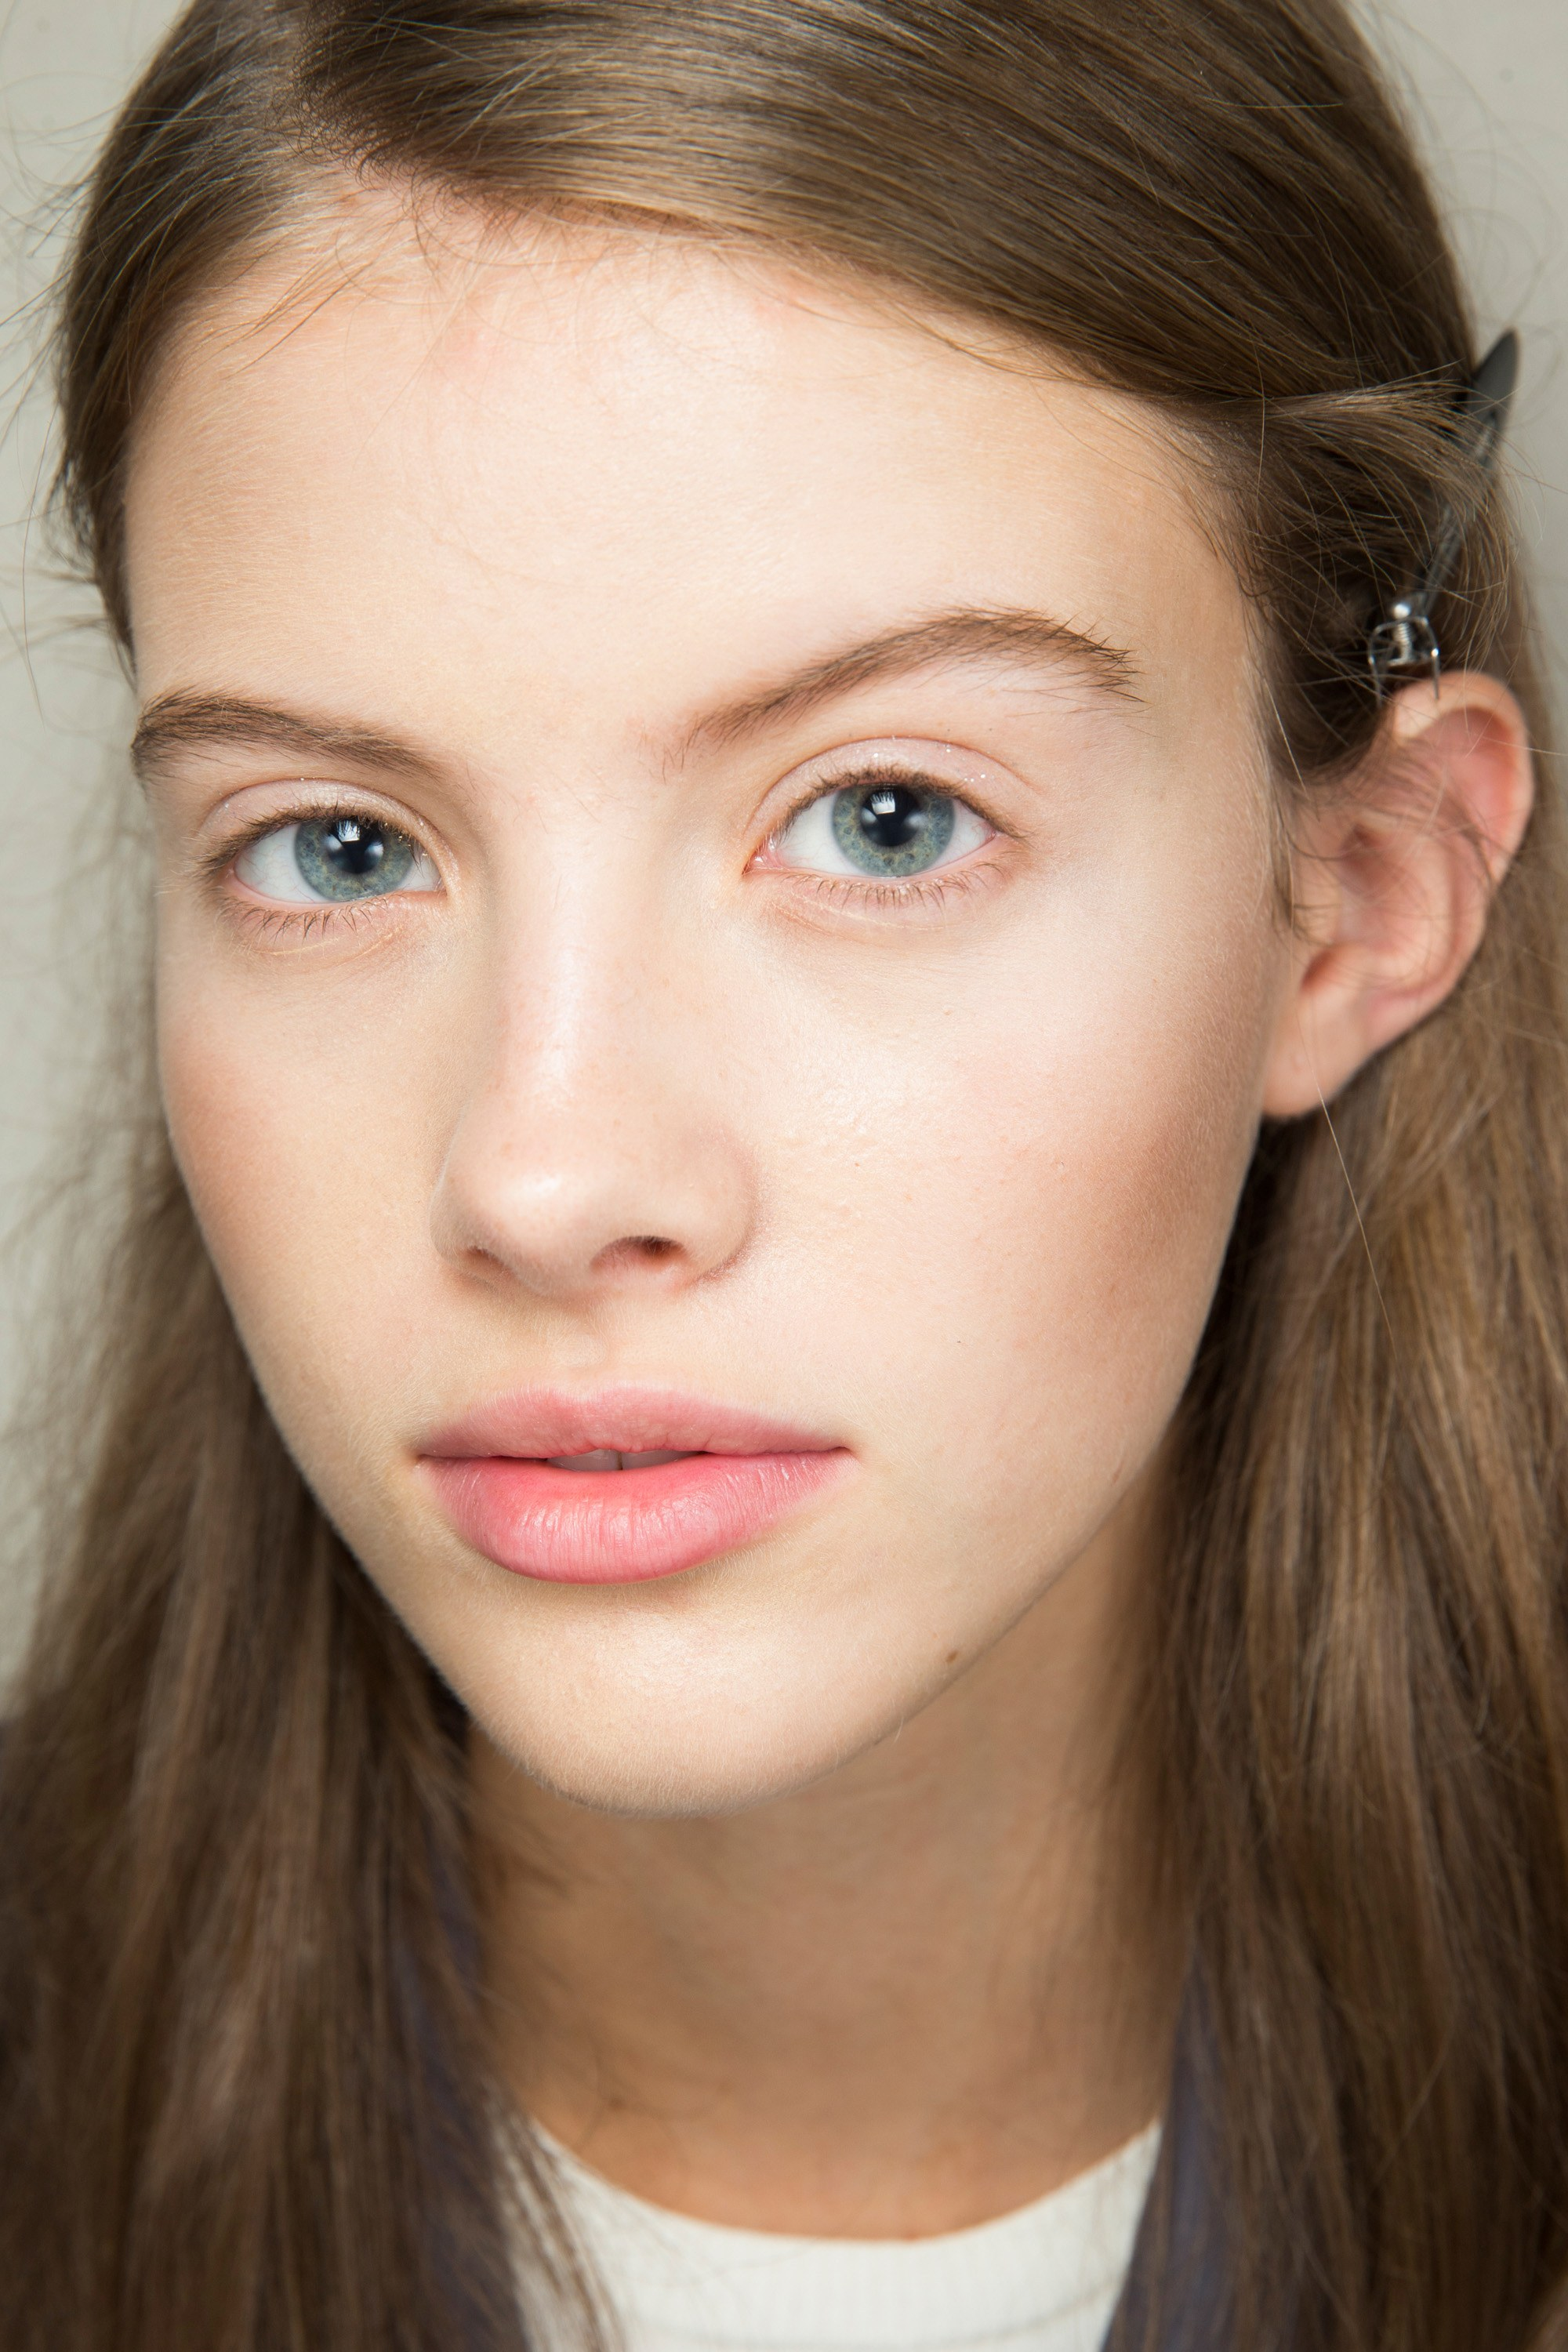 ROSE & IVY Journal Beauty Flash Lanvin's Rosy Cheeks Spring 2017